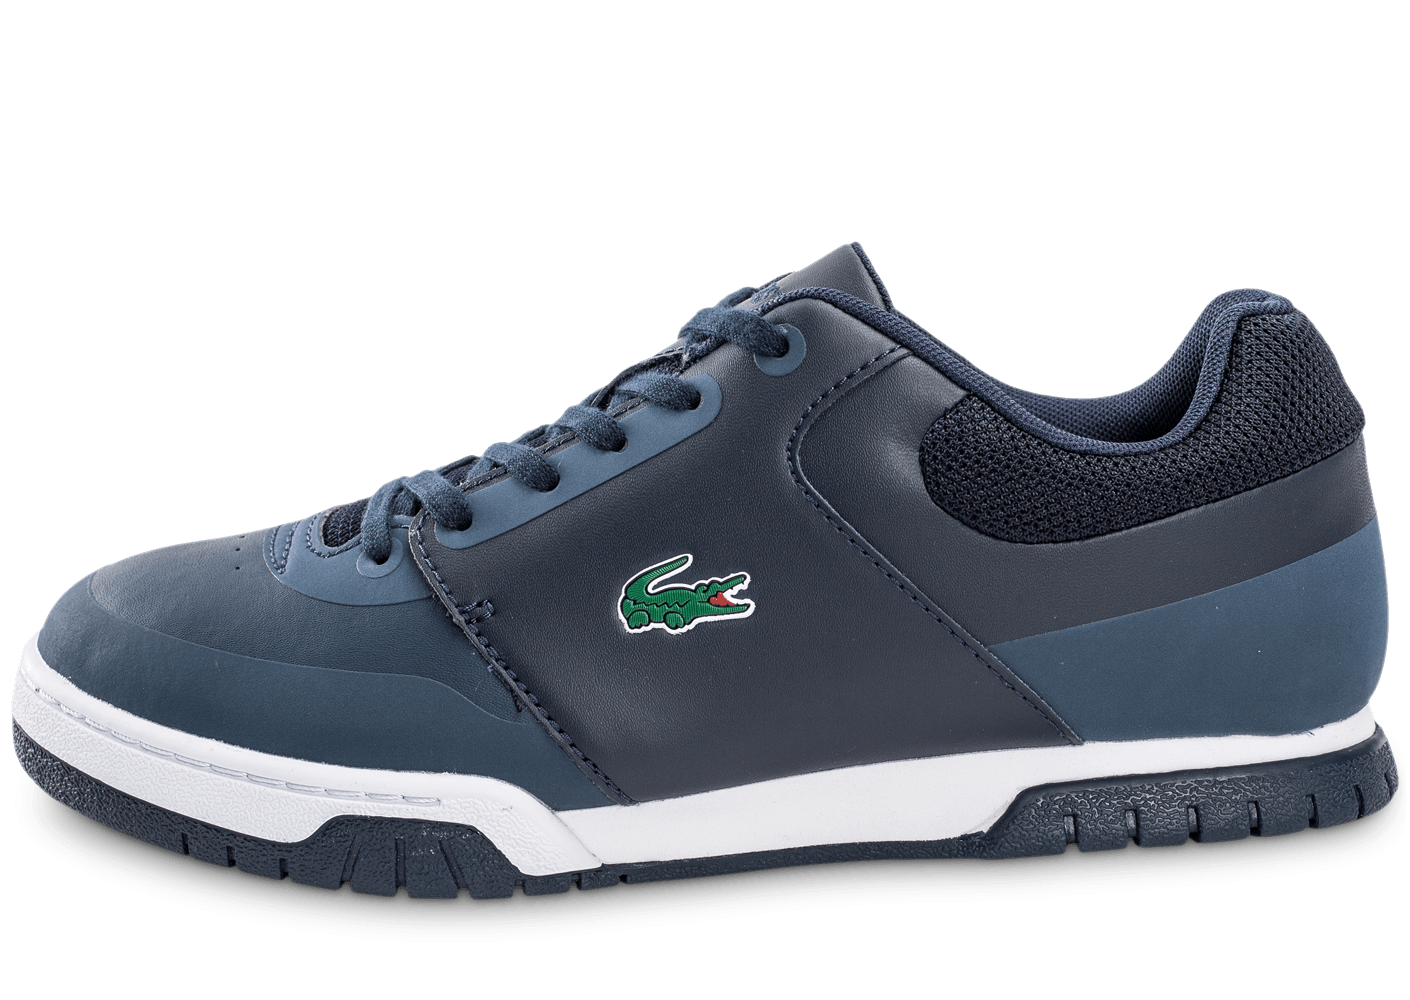 7f2d3079ab5 Lacoste Indiana Evo bleu marine - Chaussures Baskets homme - Chausport